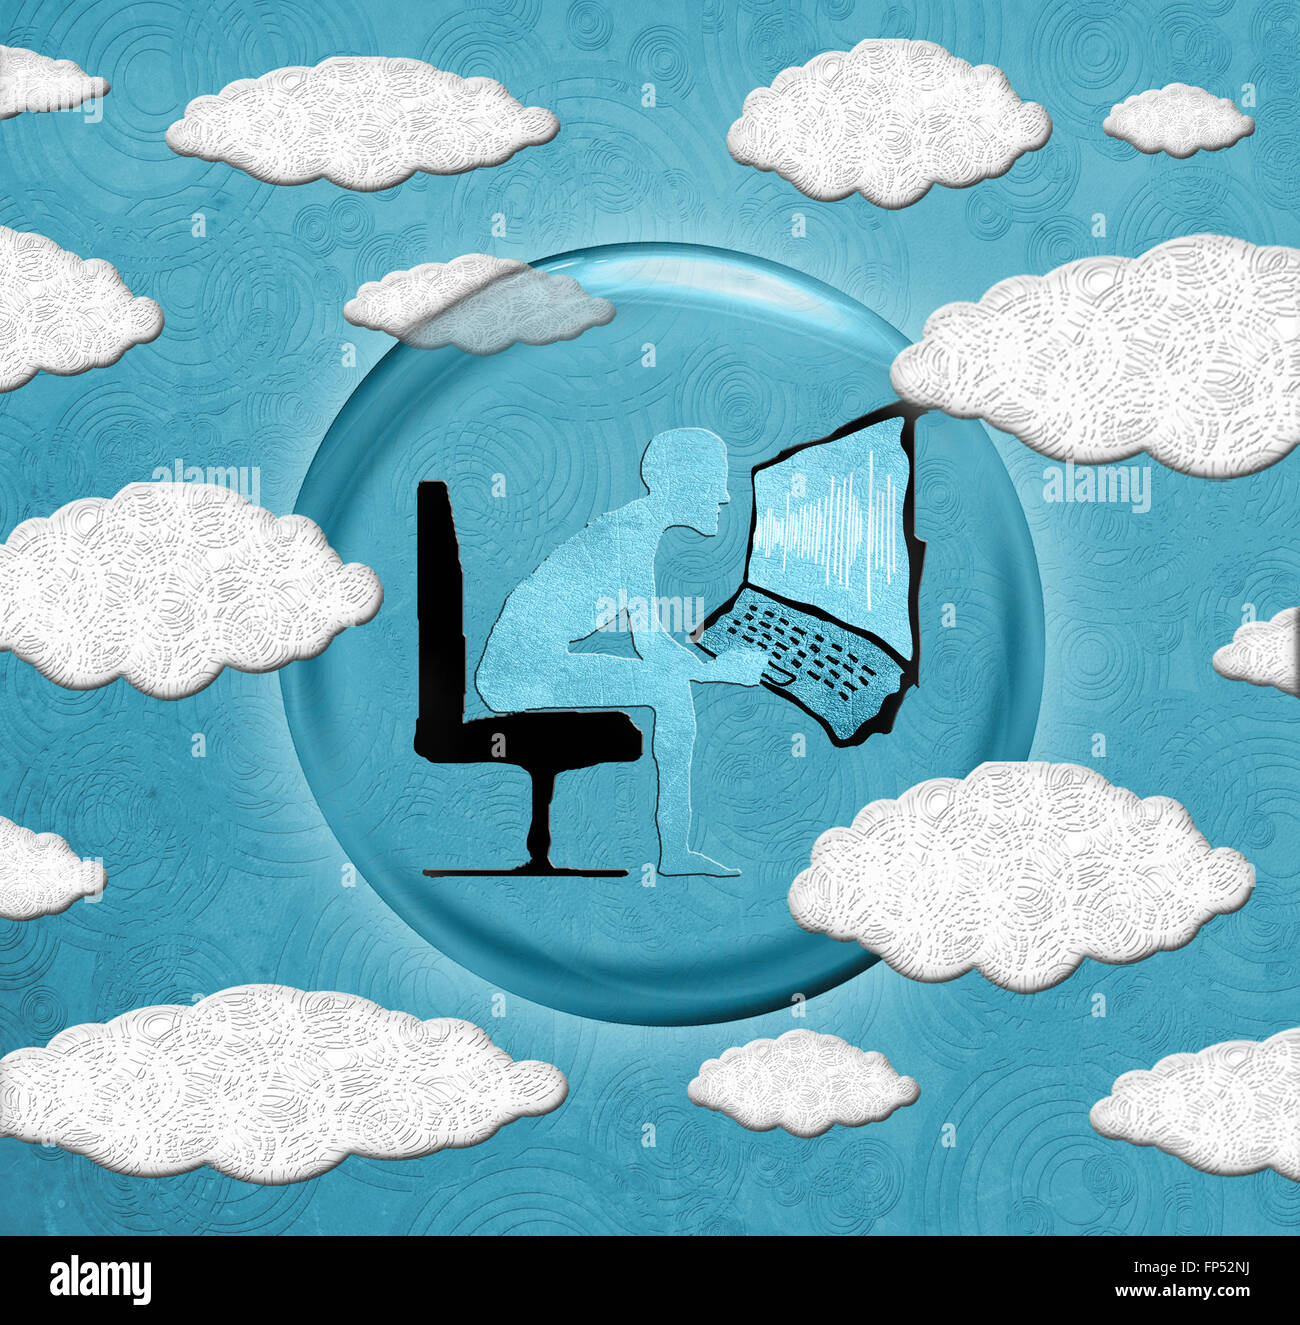 Concepto de cloud computing ilustración digital Foto de stock